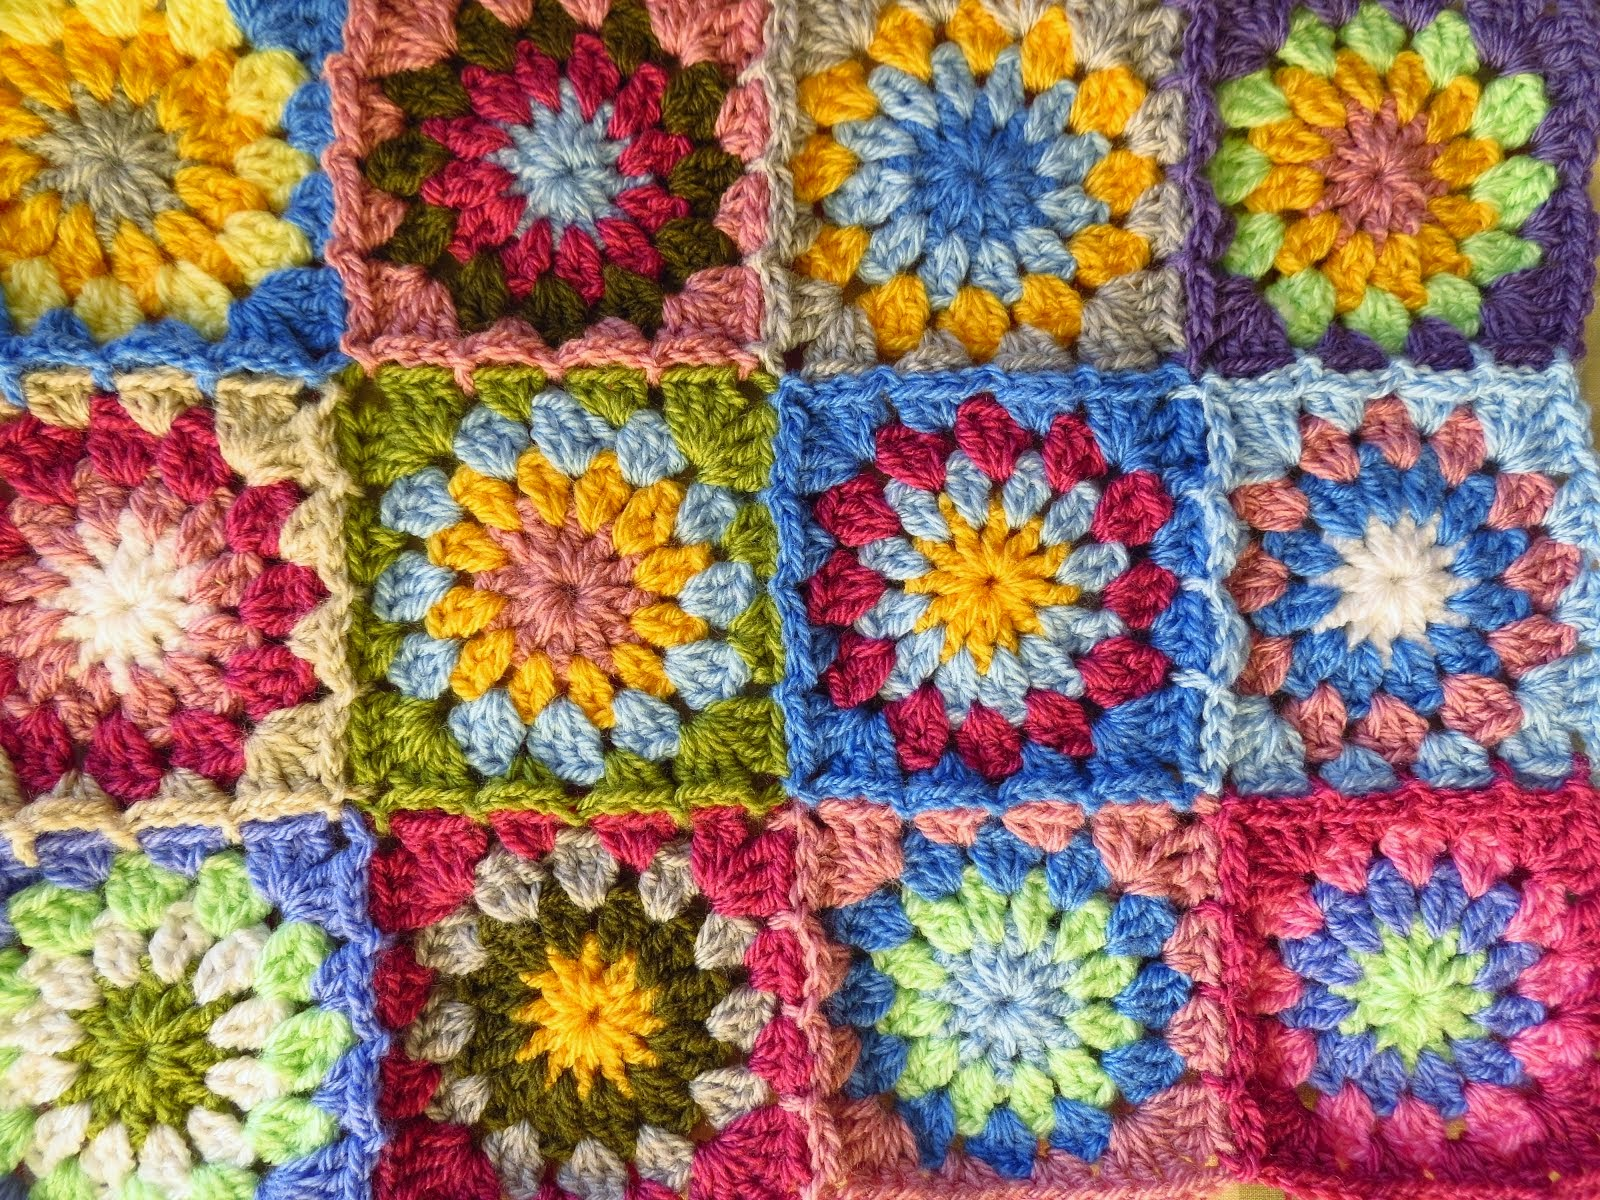 Little Sunburst Square